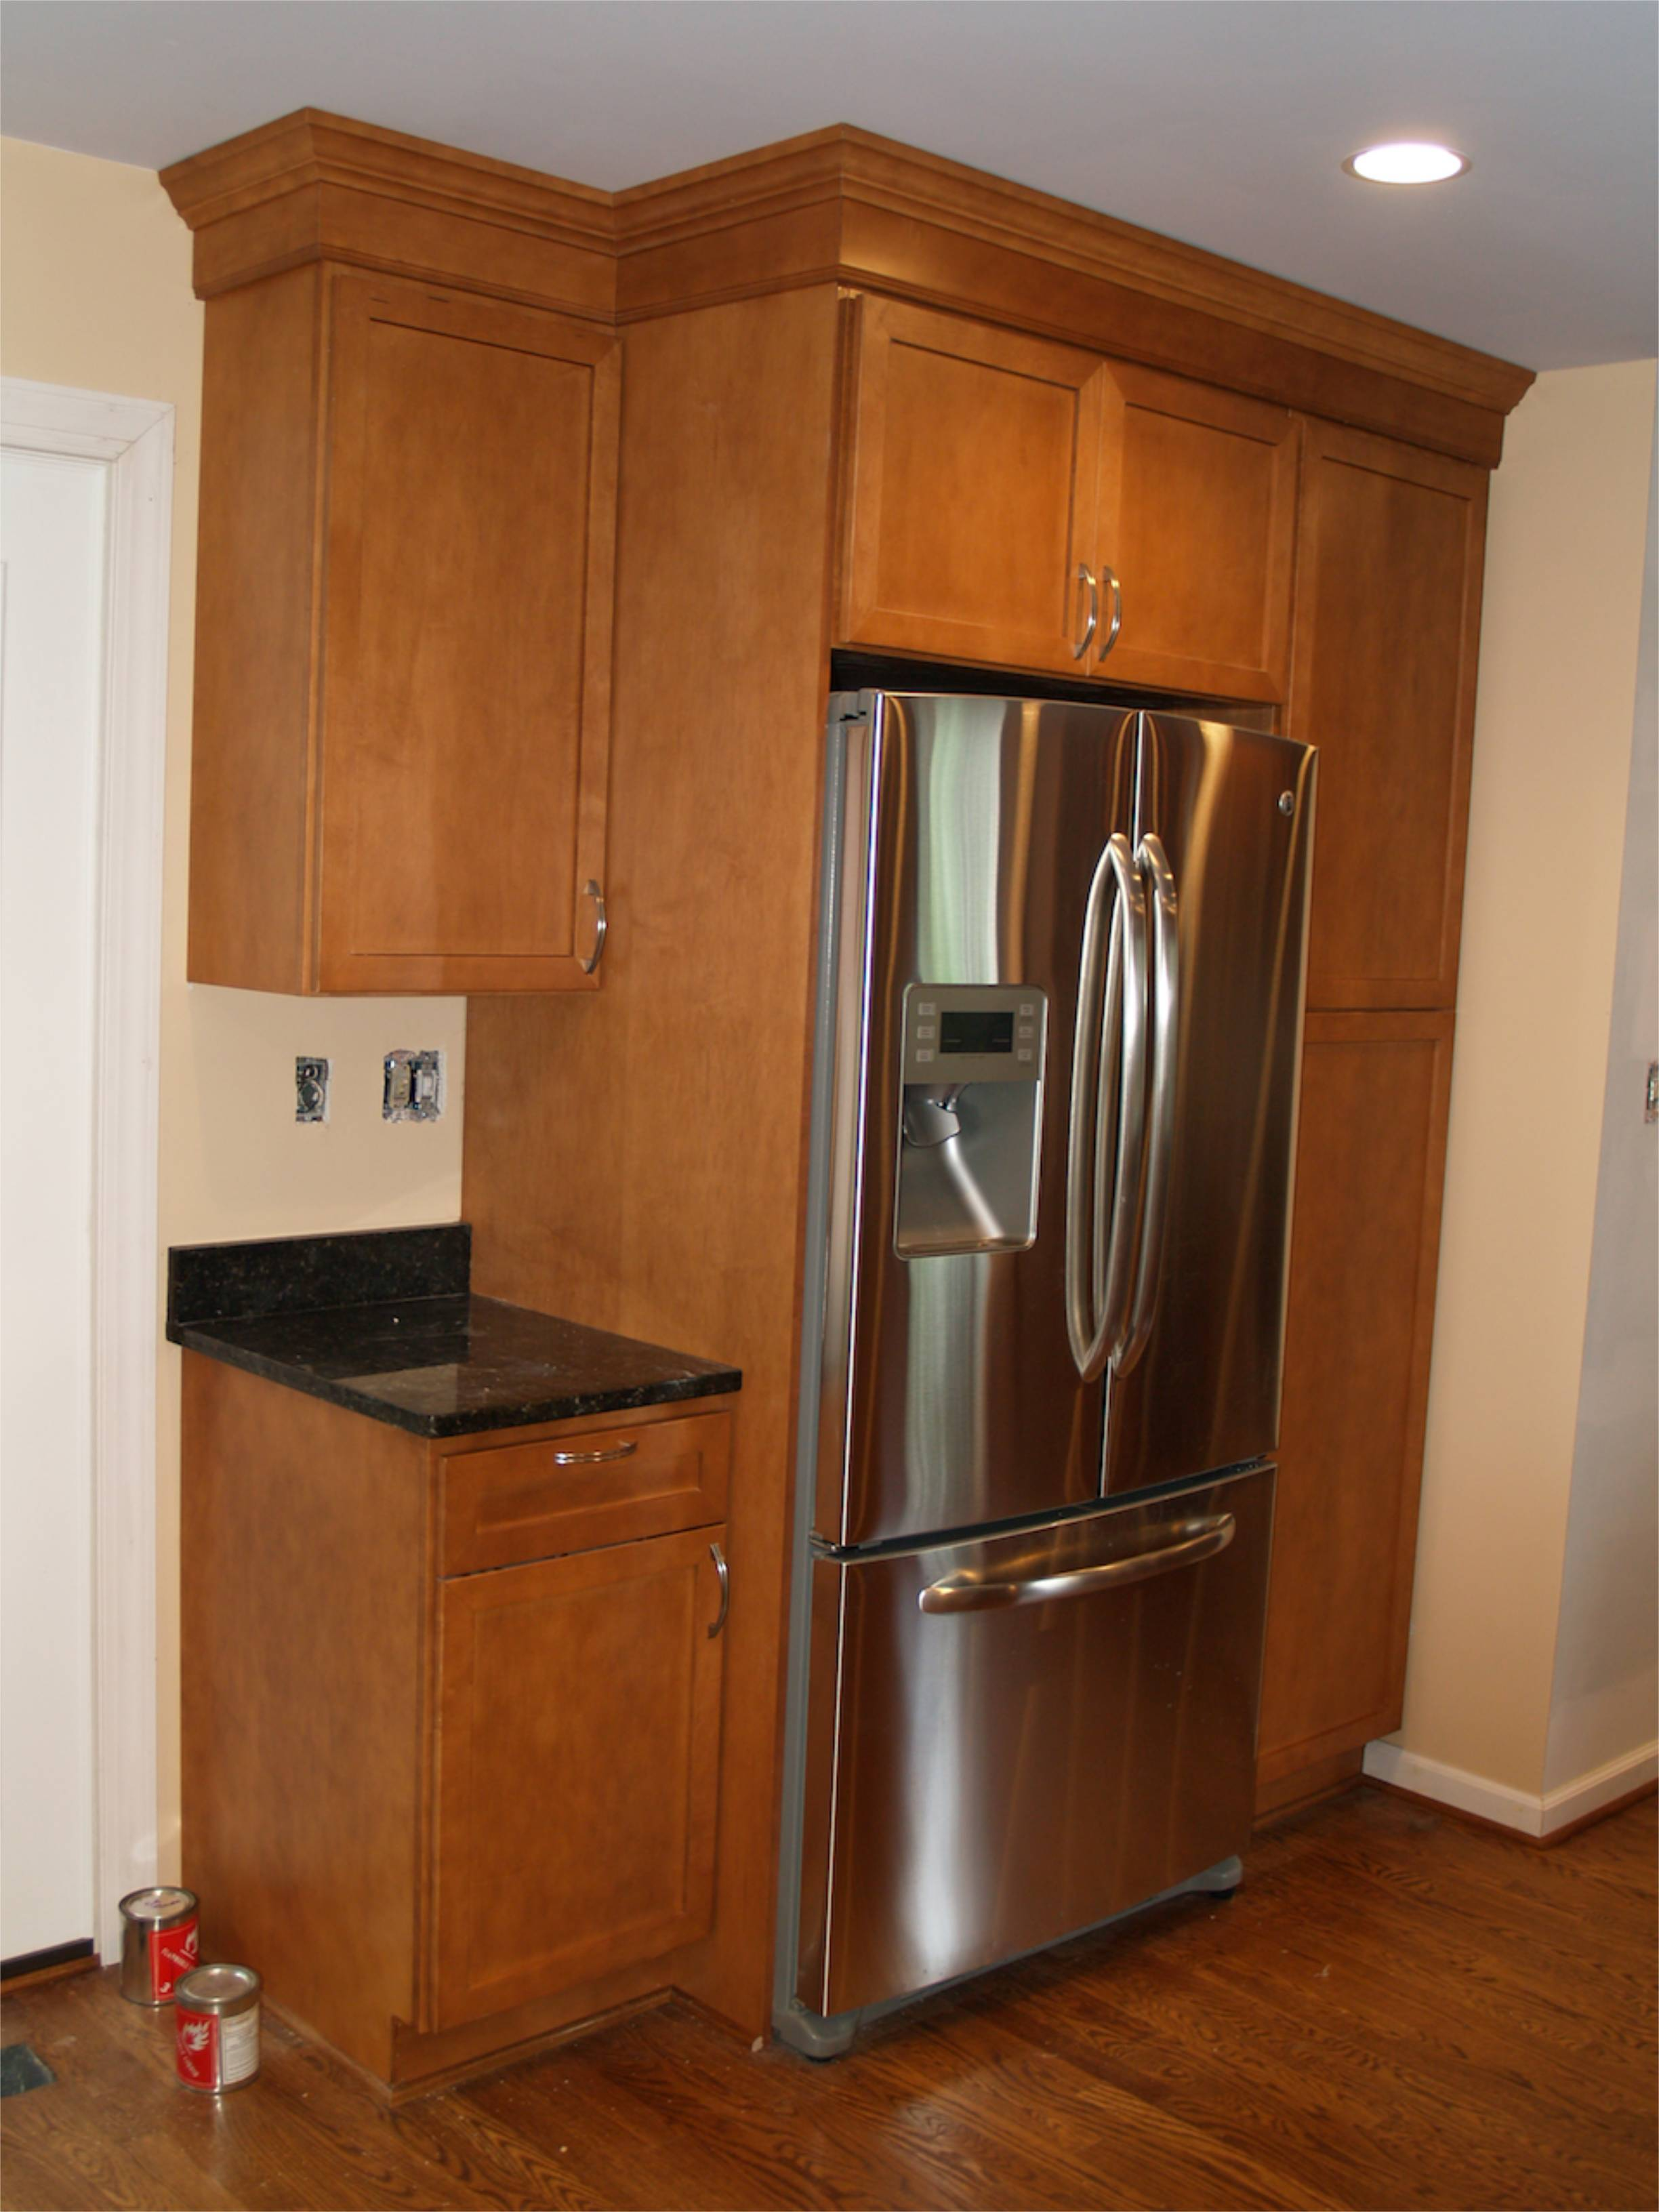 Refrigerator kitchen cabinet images for Where to get a kitchen from